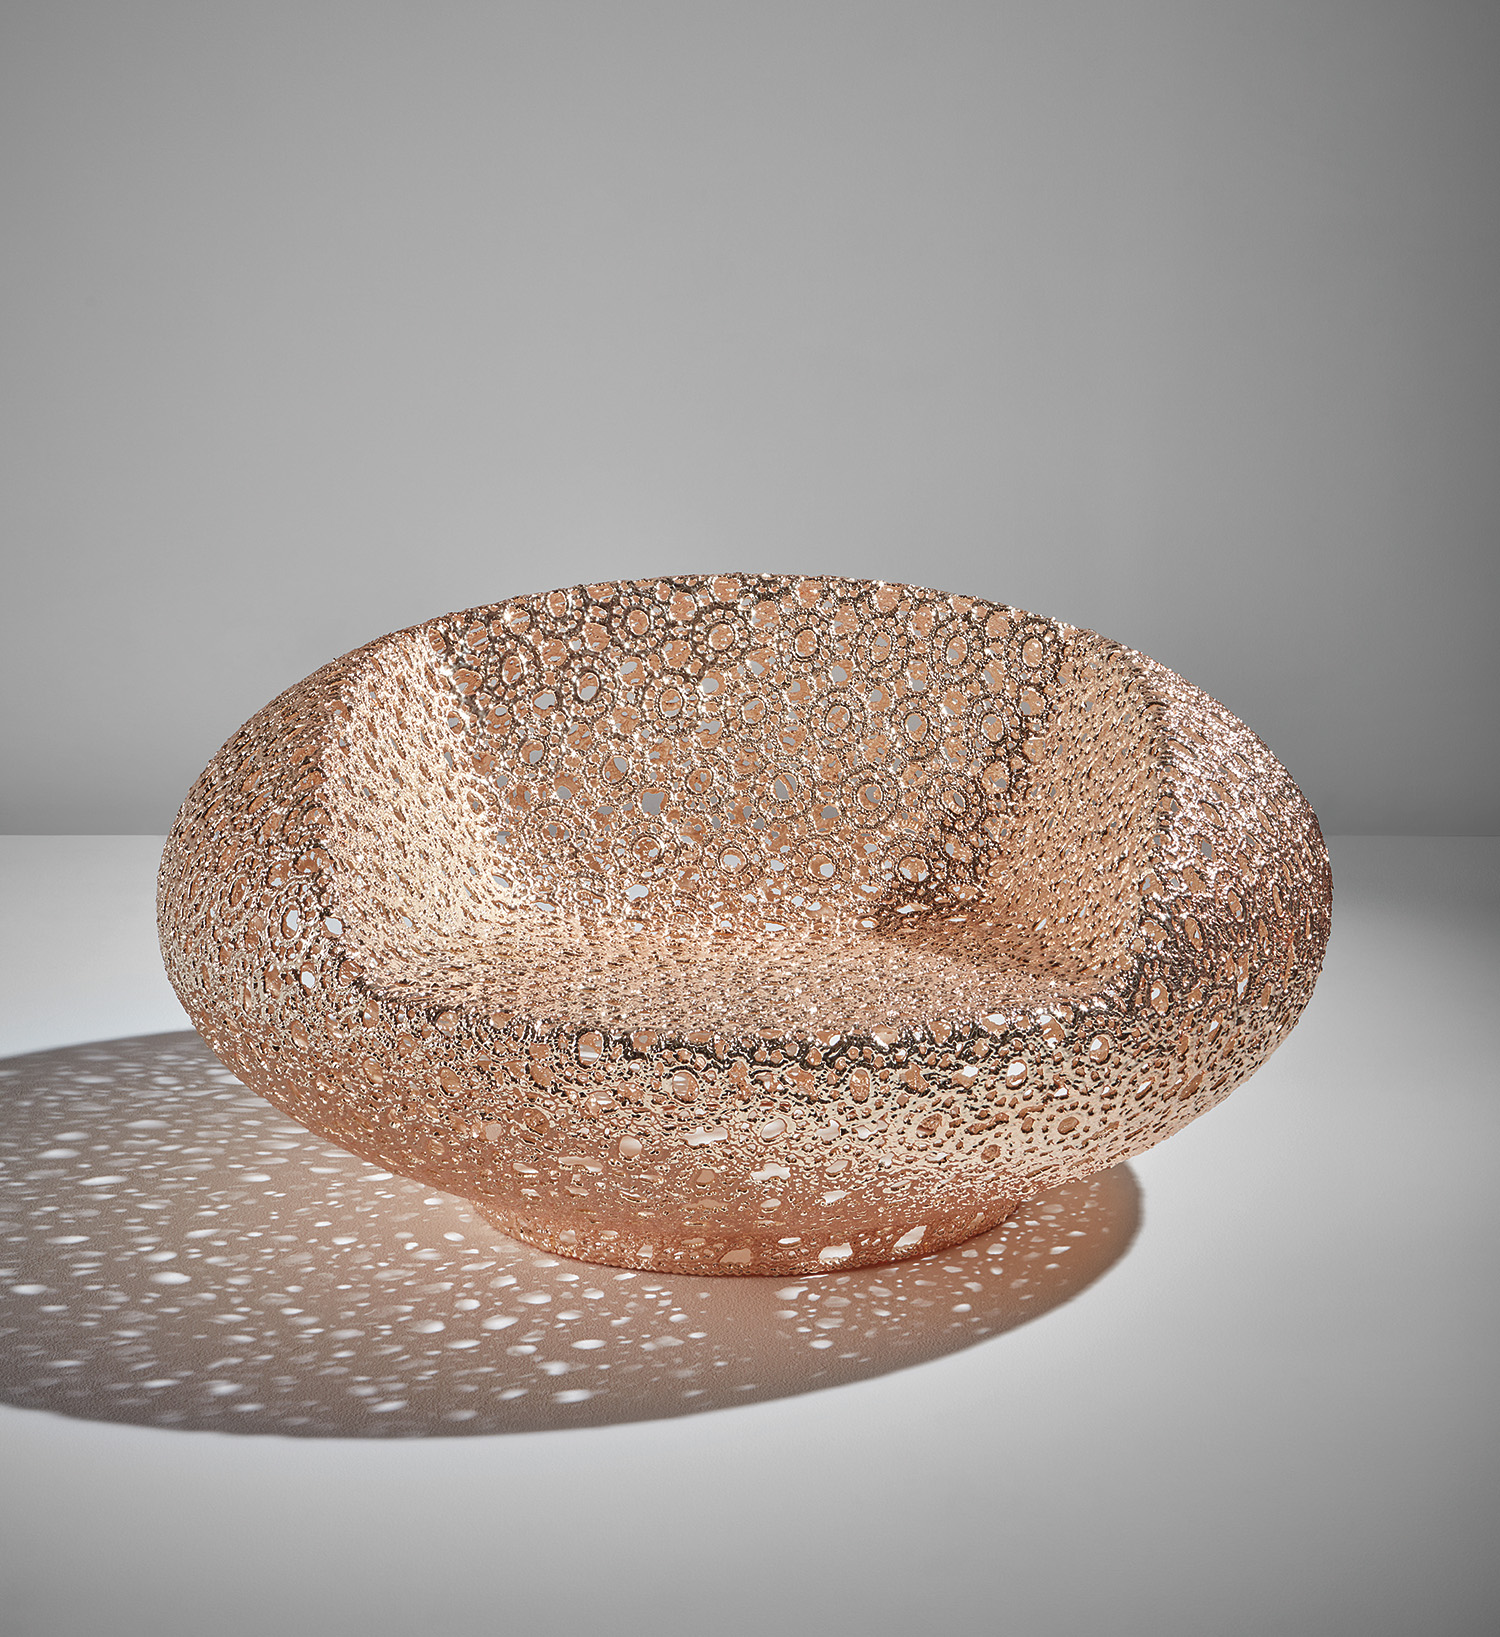 "A Marcel Wanders gold limited edition ""Bon Bon"" chair, fashioned from hand-crocheted rope impregnated with epoxy. It is light and ethereal-looking."